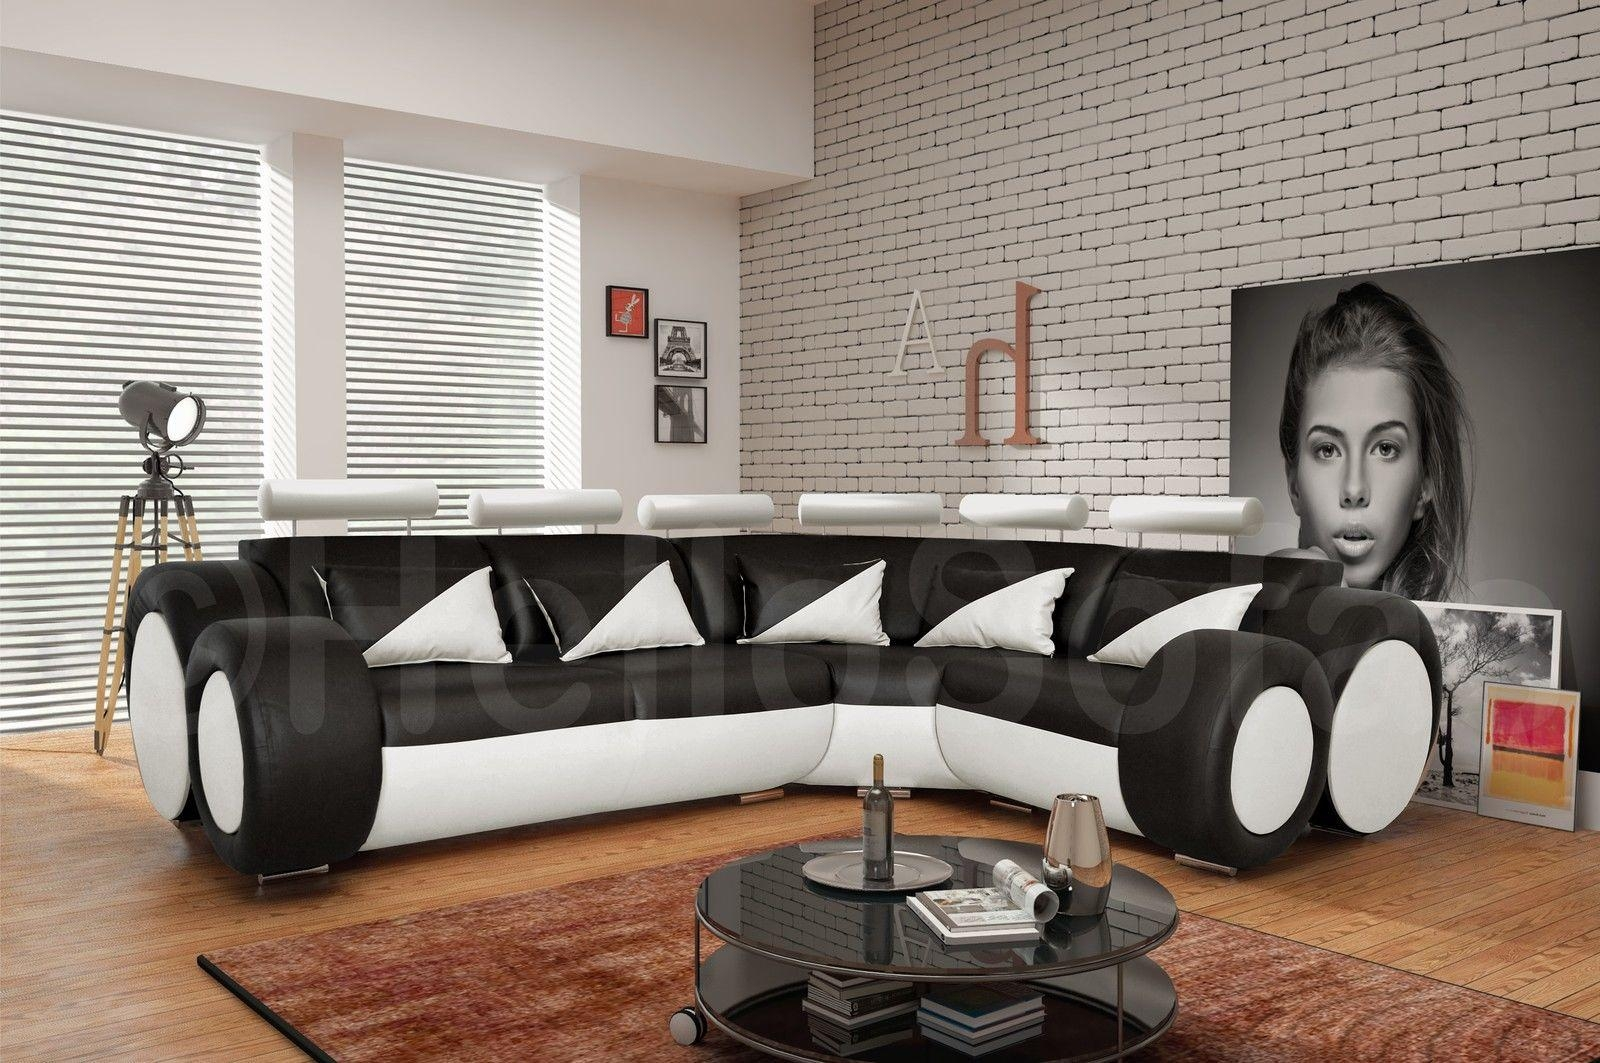 Large Corner Sofa In Black Seats White Sofas Fashion With Images With Large Black Leather Corner Sofas (View 12 of 22)